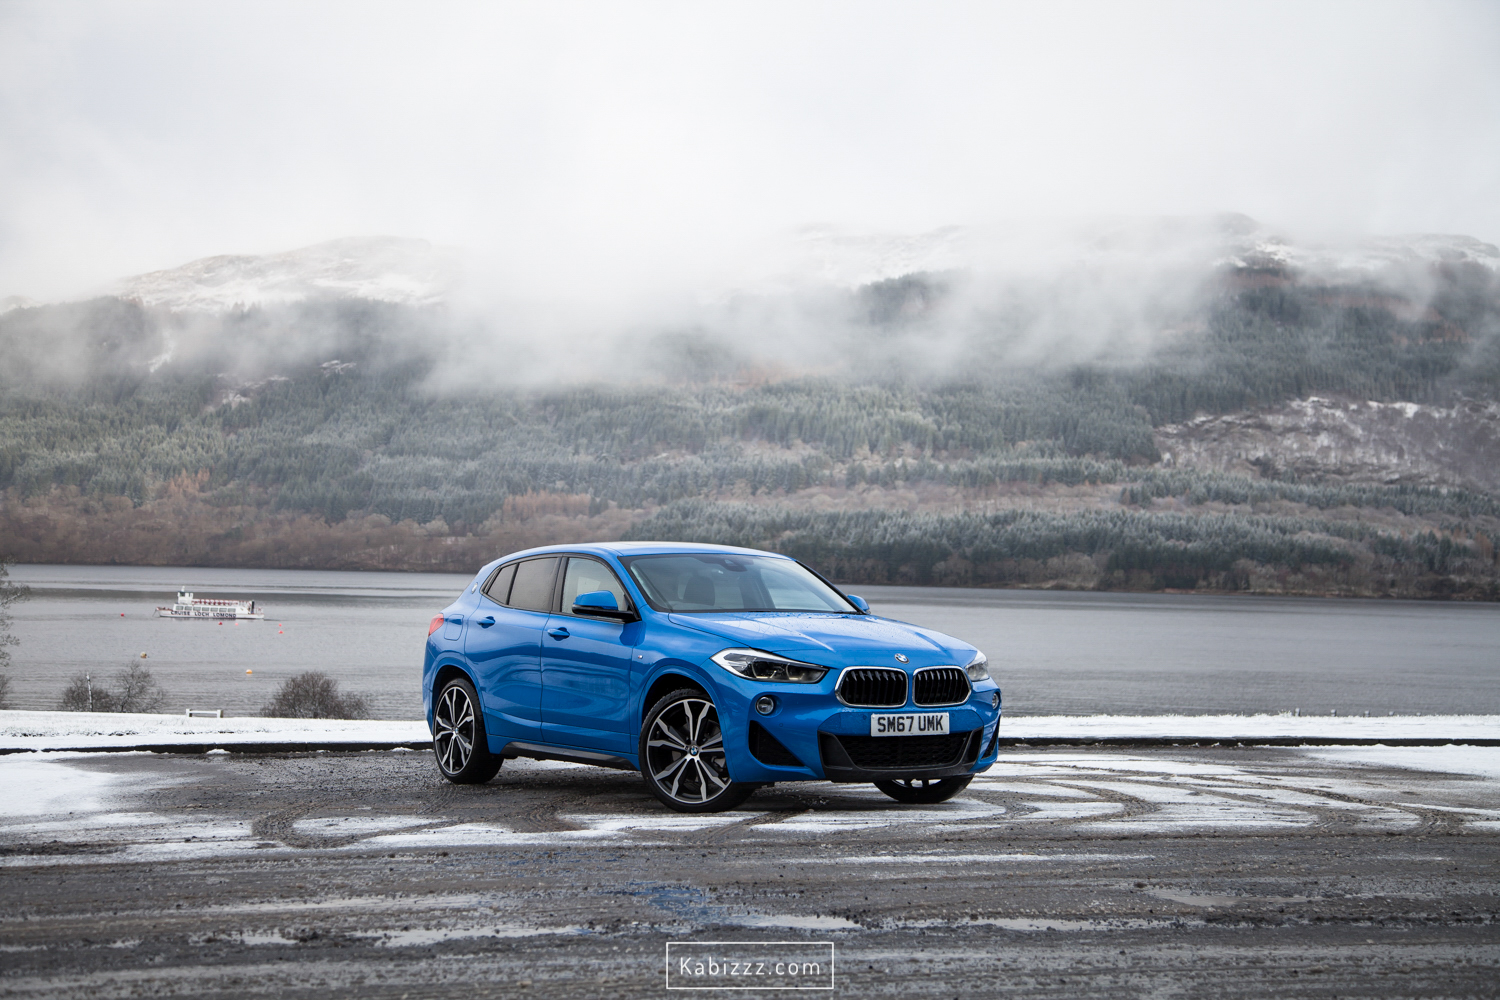 2018_bmw_x2_blue_automotive_photography_kabizzz-6.jpg